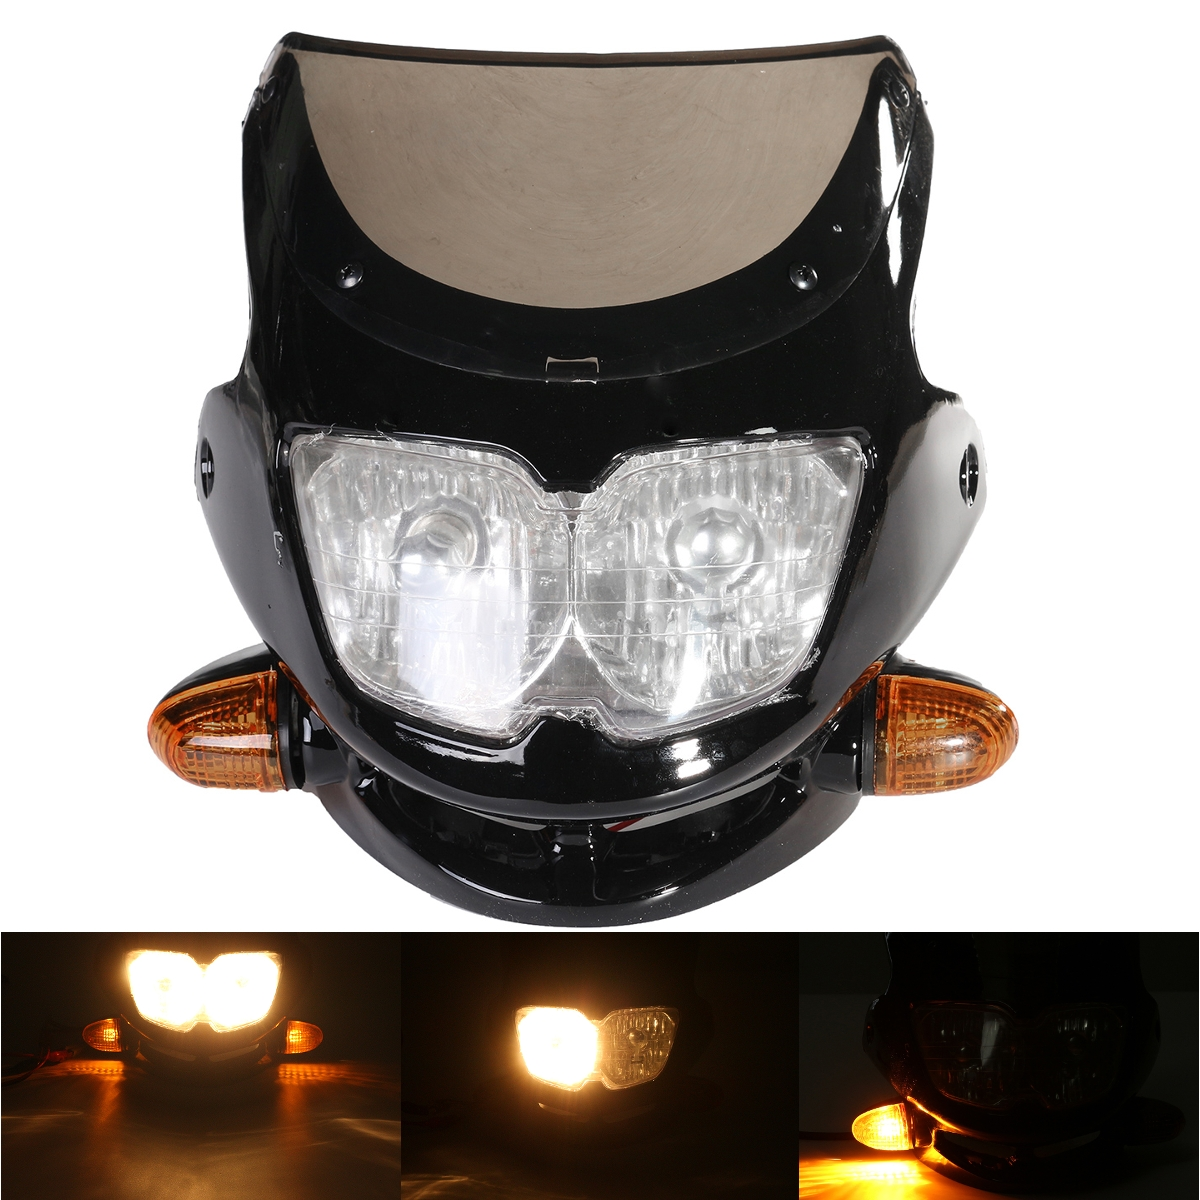 Motorcycle Dirt Bike Streetfighter Headlight Assembly w